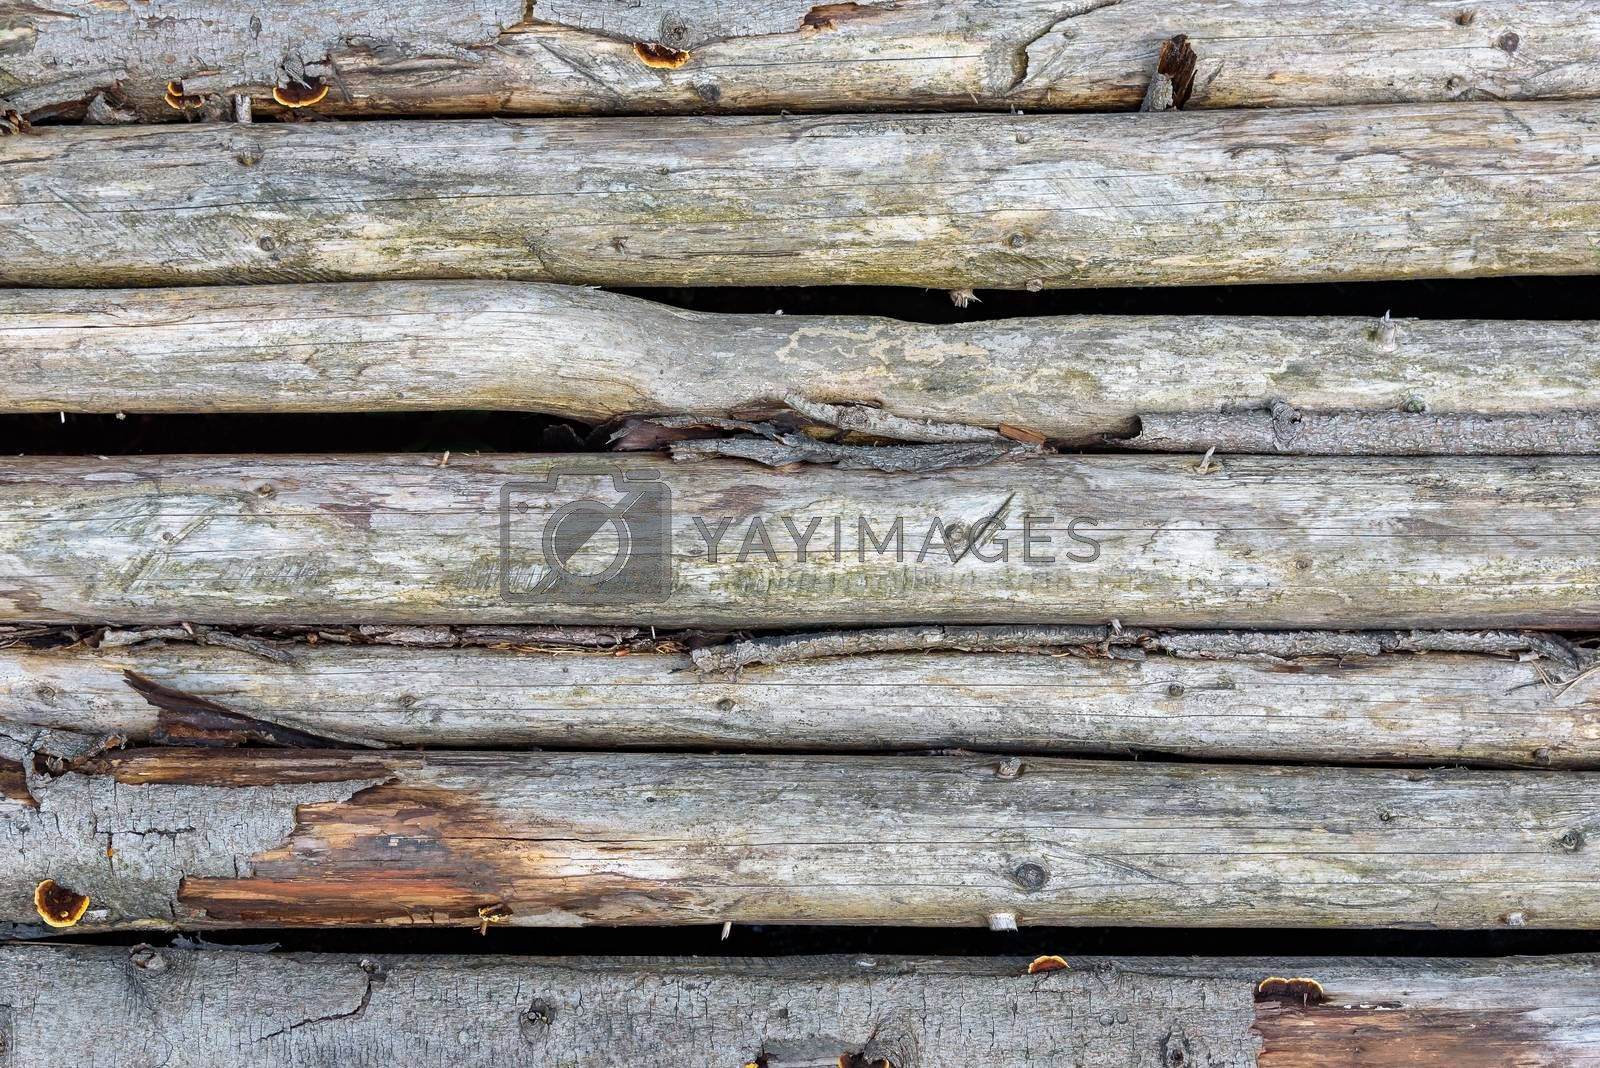 Royalty free image of Wooden texture made of logs by mkos83